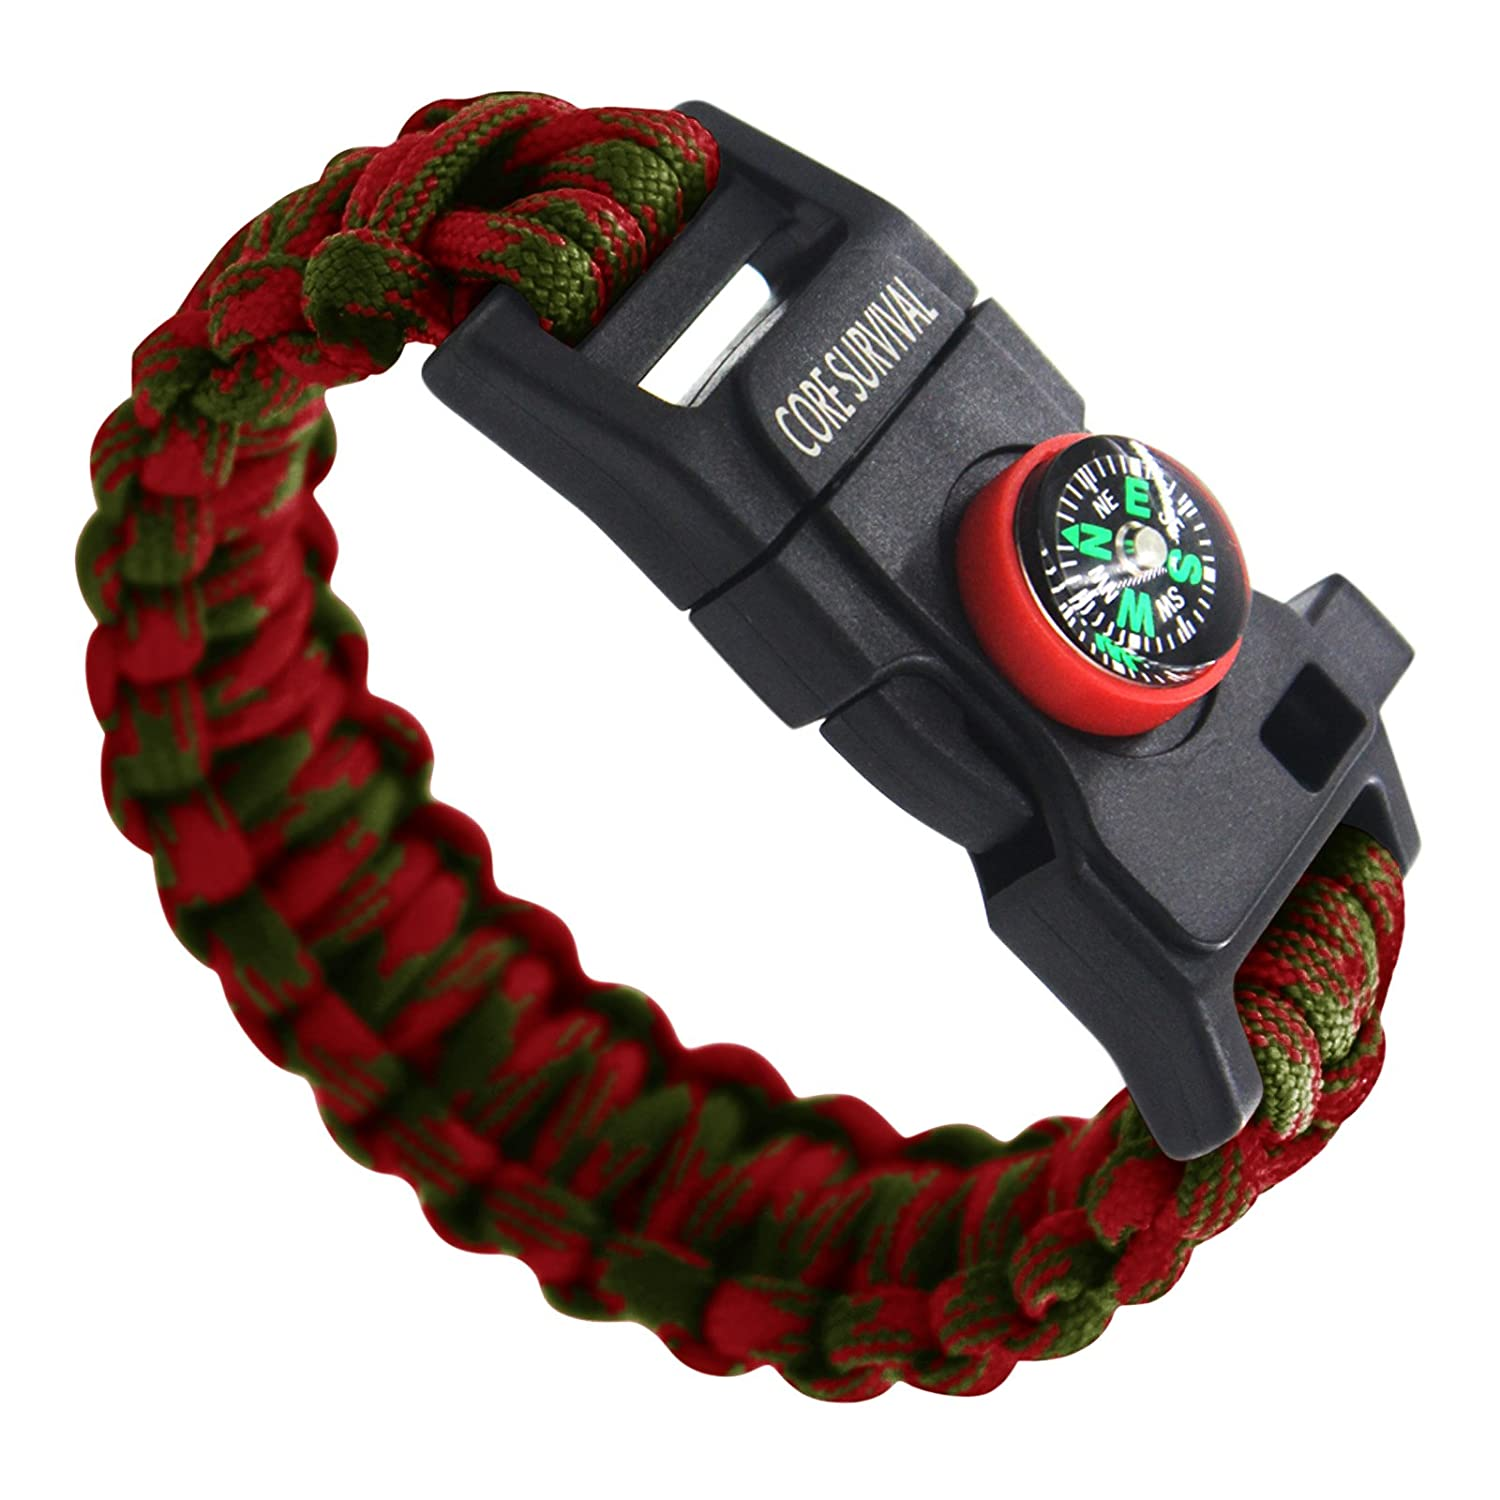 Core Survival Paracord Survival Bracelet - Hiking Multi Tool, Paracord...